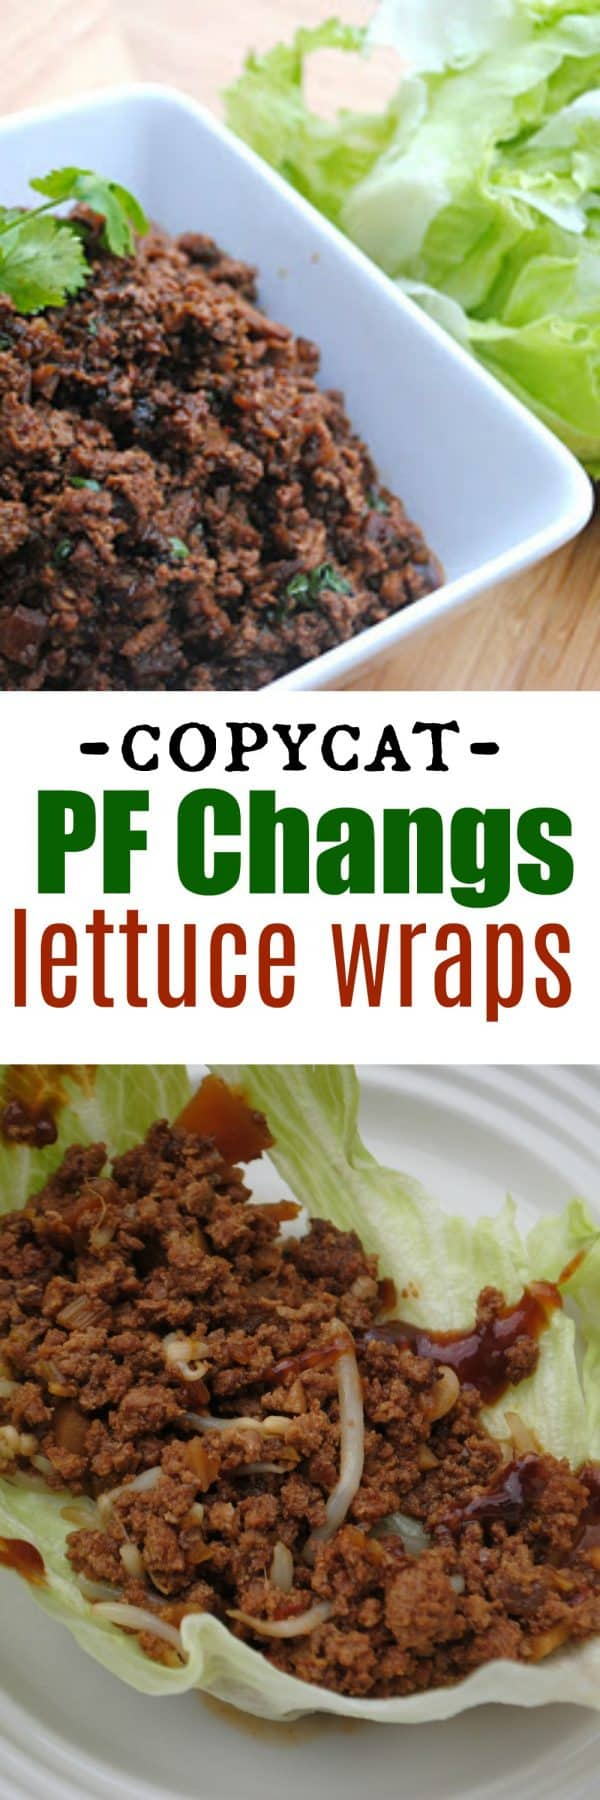 Copycat PF Changs Lettuce Wraps Recipe made in the Slow Cooker #crockpot #dinnerrecipes